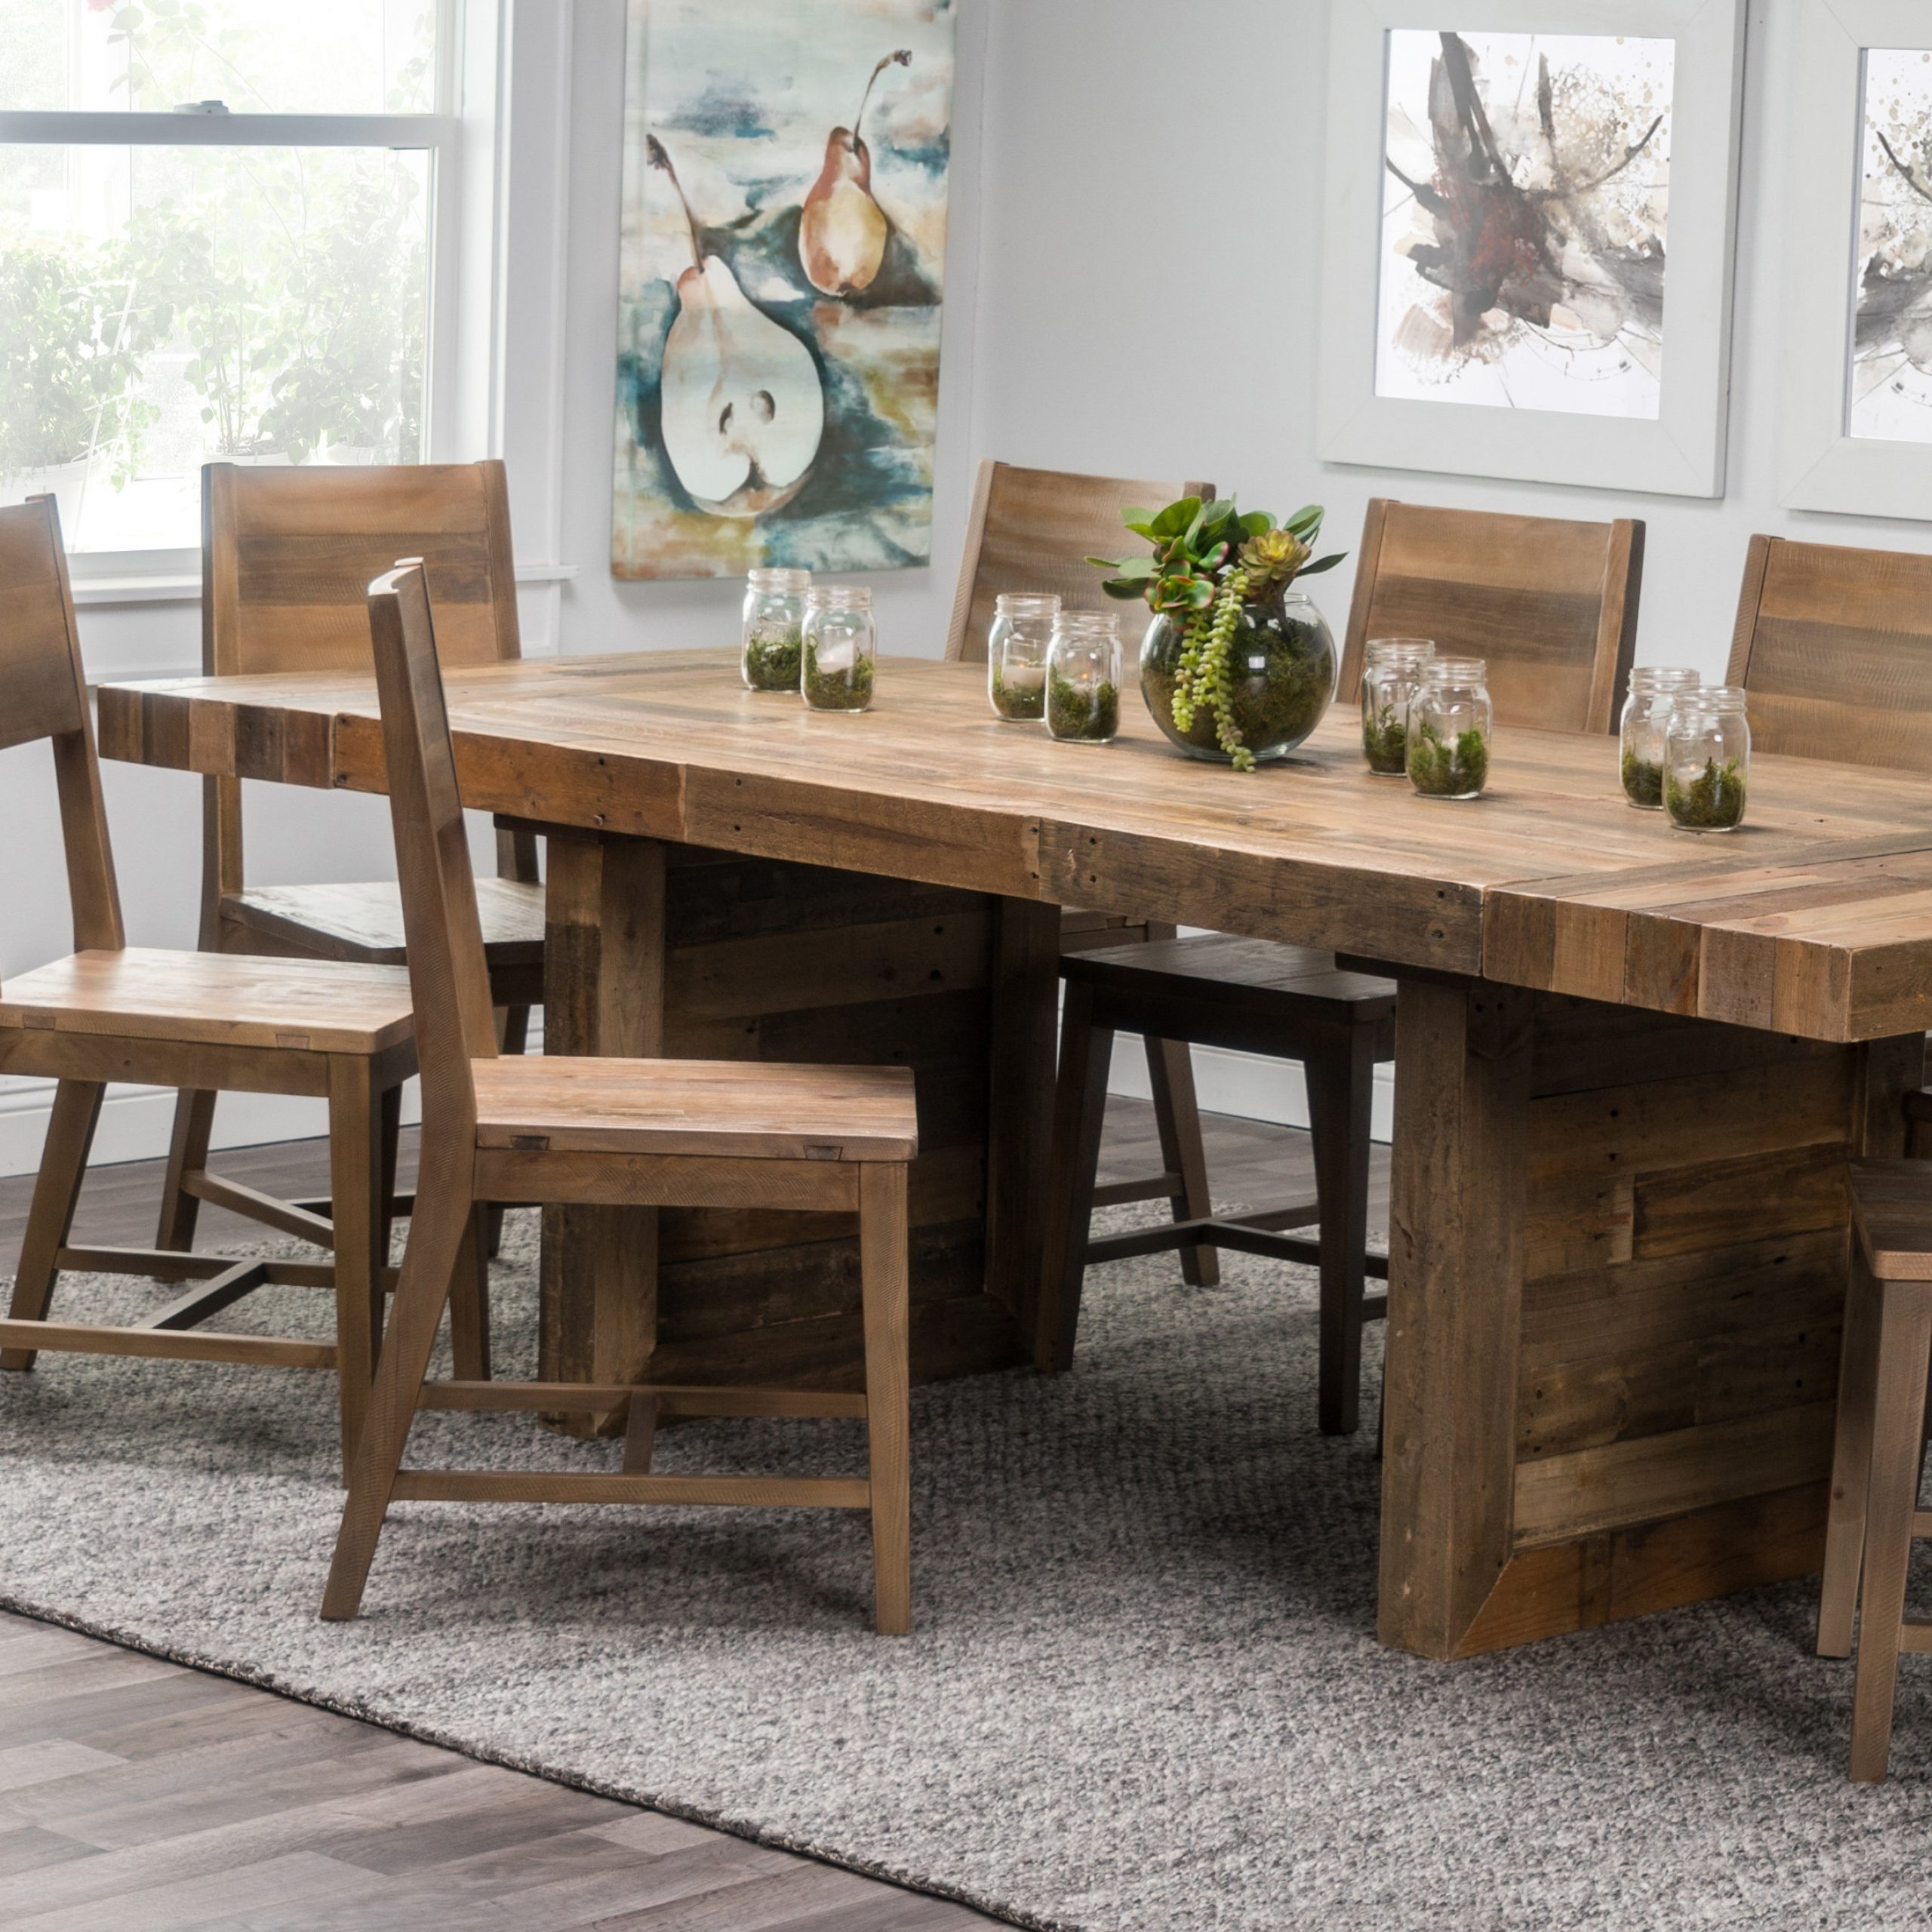 Iron Dining Tables With Mango Wood With Regard To Recent Home Norman Extendable Solid Wood Dining Table Birch Lane (View 21 of 25)